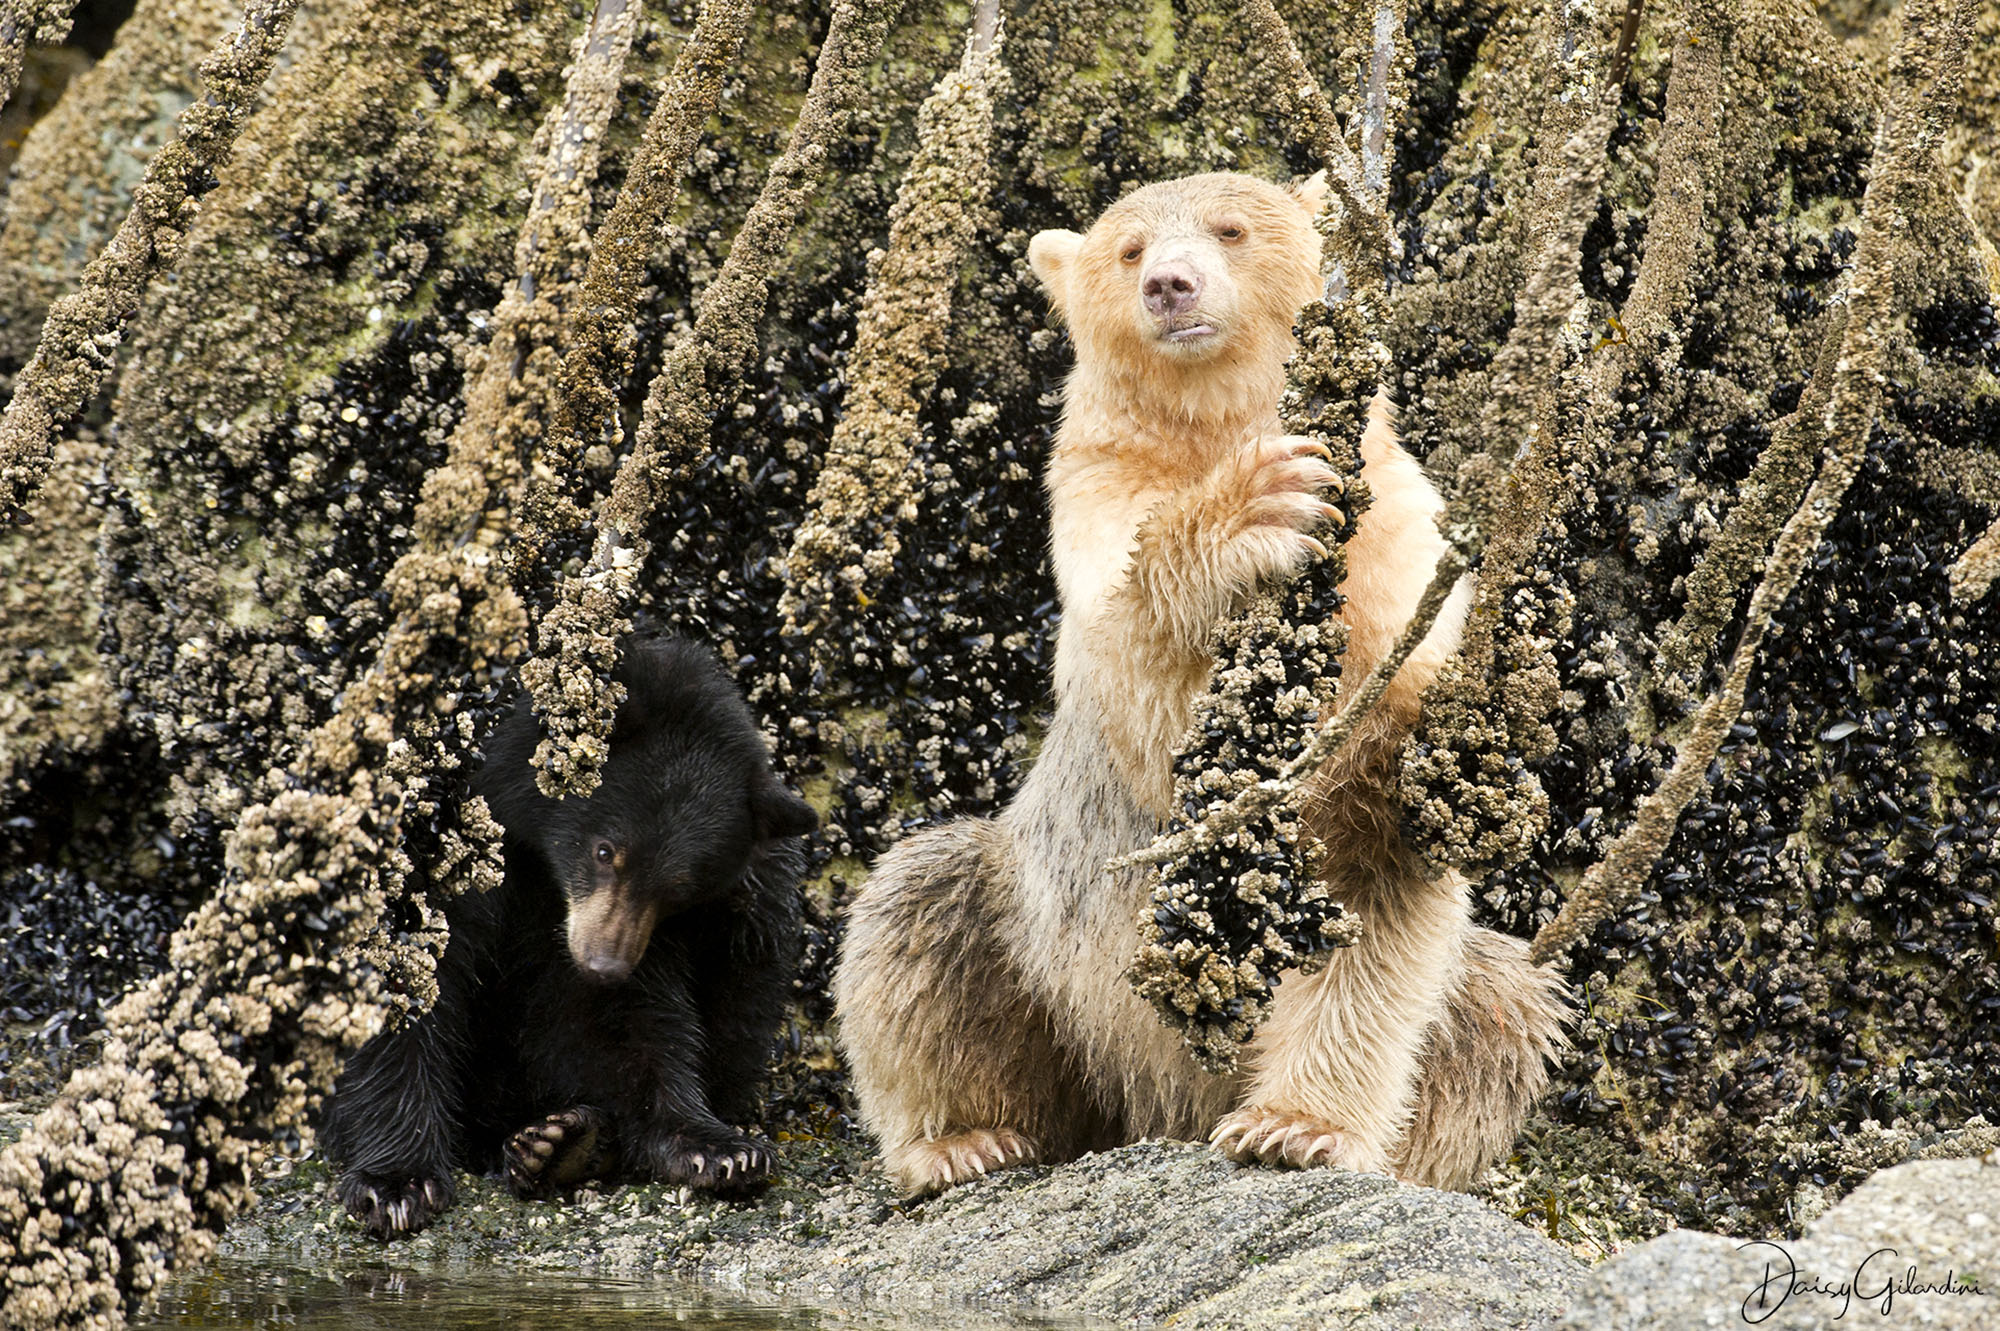 Spirit bear mother with black cub eating barnacles (Daisy Gilardini)